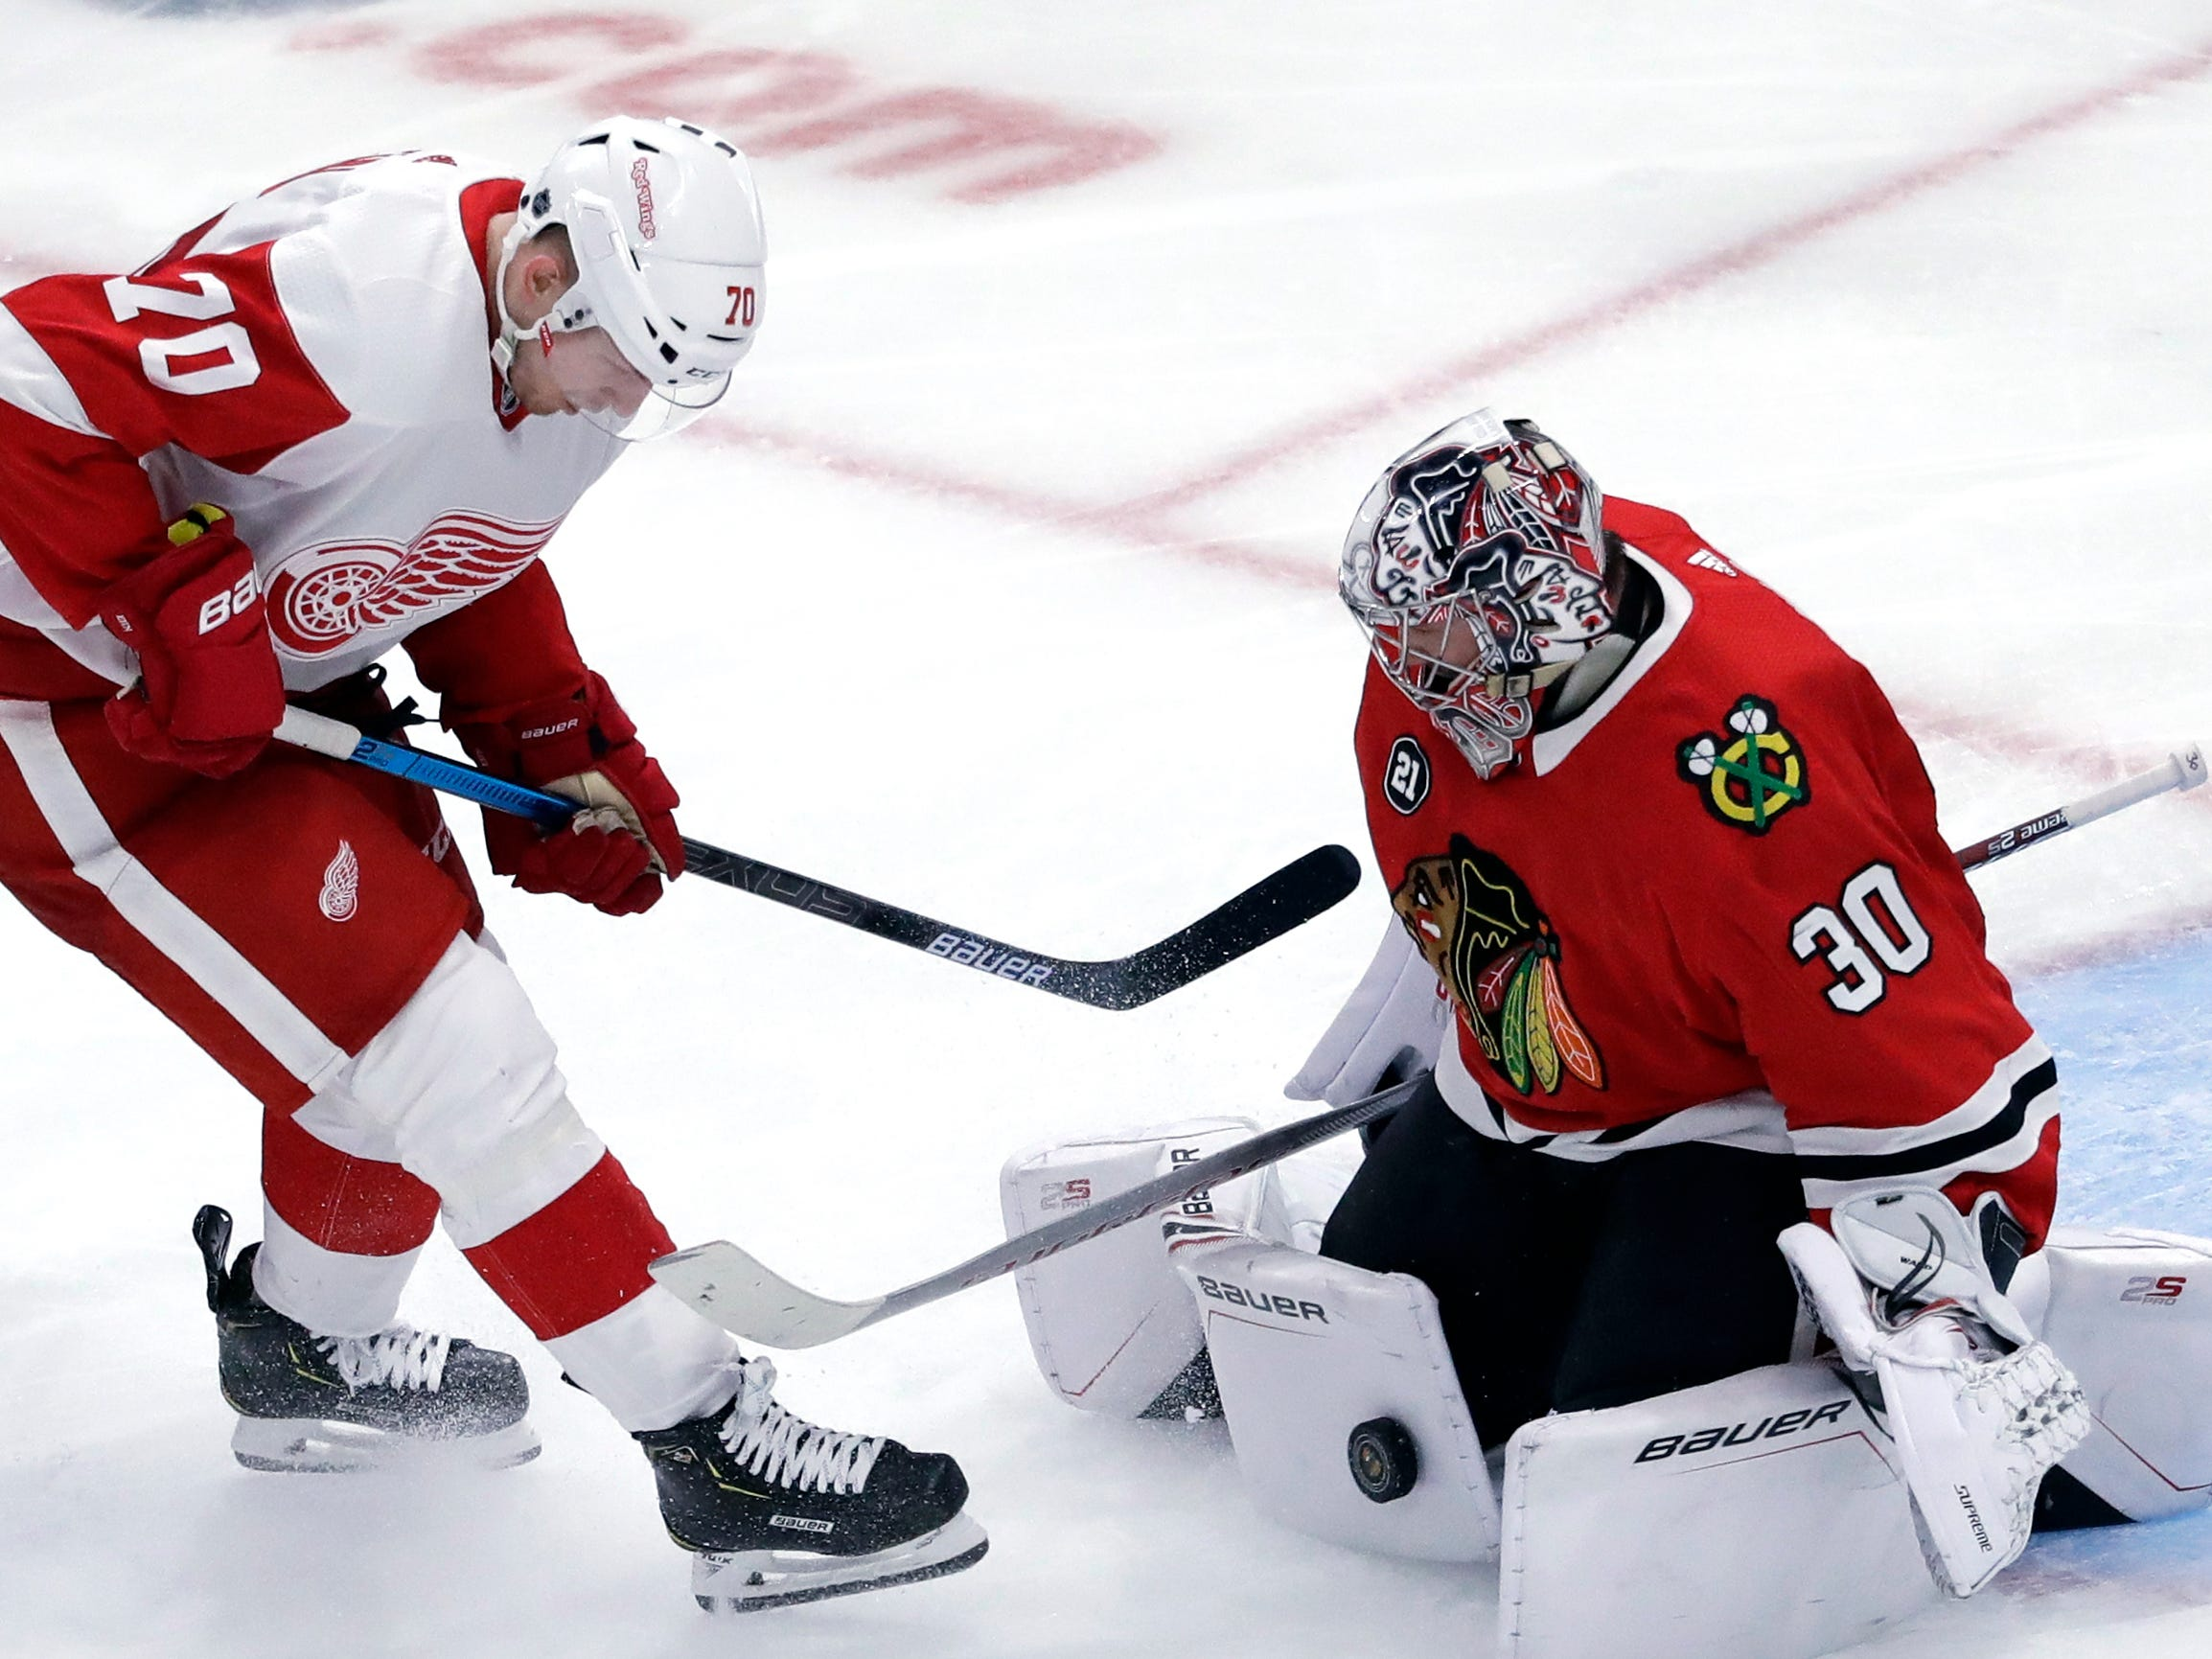 Chicago Blackhawks goalie Cam Ward, right, blocks a shot by Detroit Red Wings center Christoffer Ehn during the third period Sunday, Feb. 10, 2019, in Chicago.